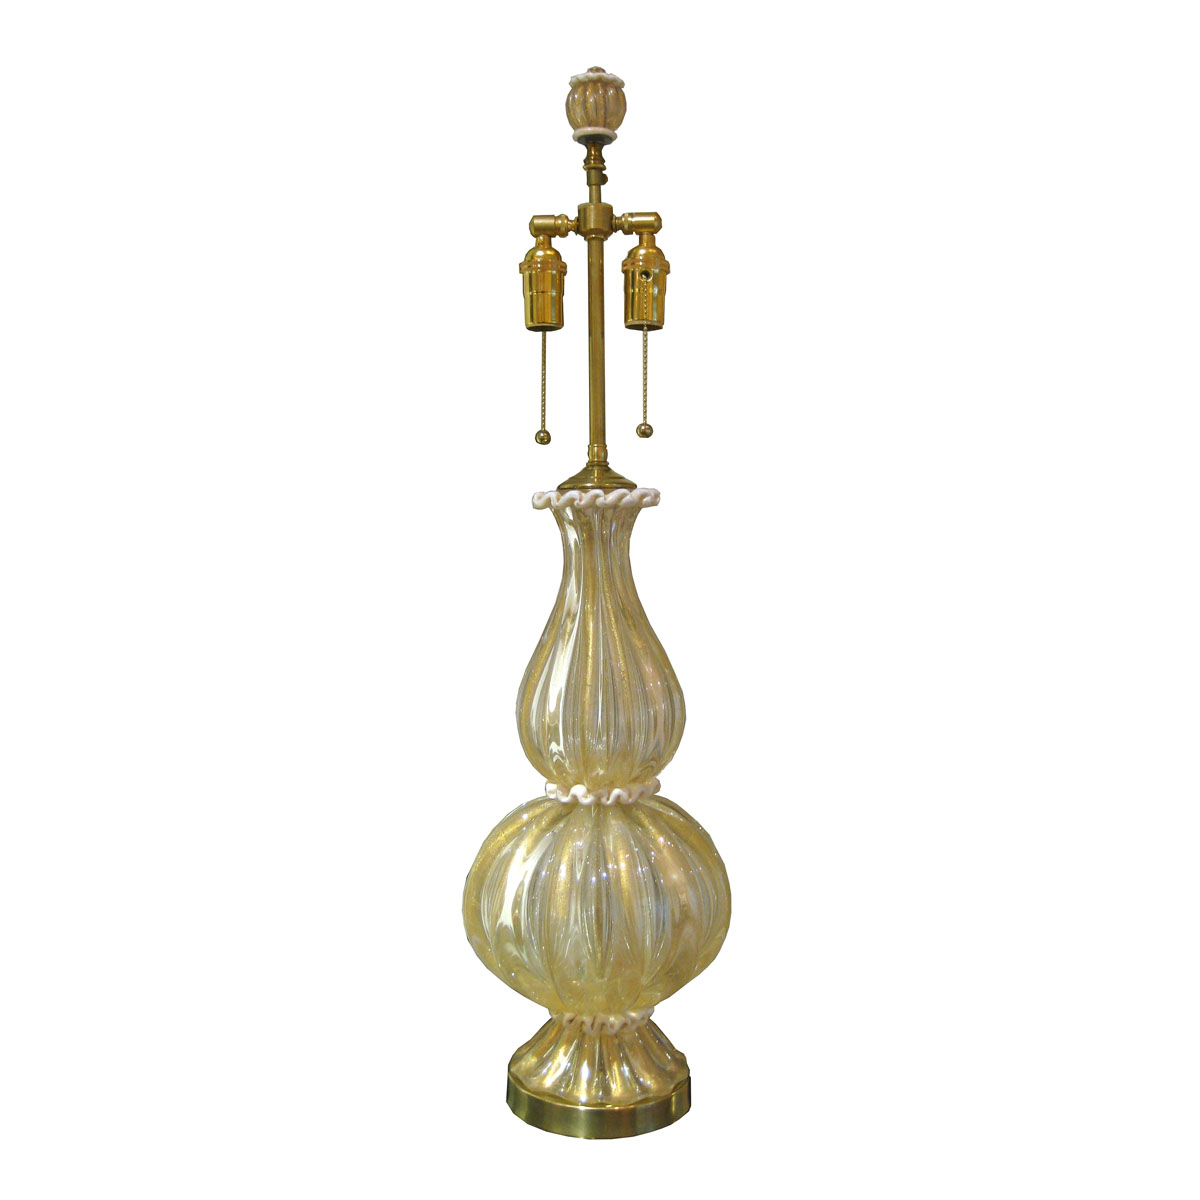 Single fluted murano glass table lamp with inclusive gold flecks and single fluted murano glass table lamp with inclusive gold flecks and air bubbles featuring a white trim single lamps john salibello aloadofball